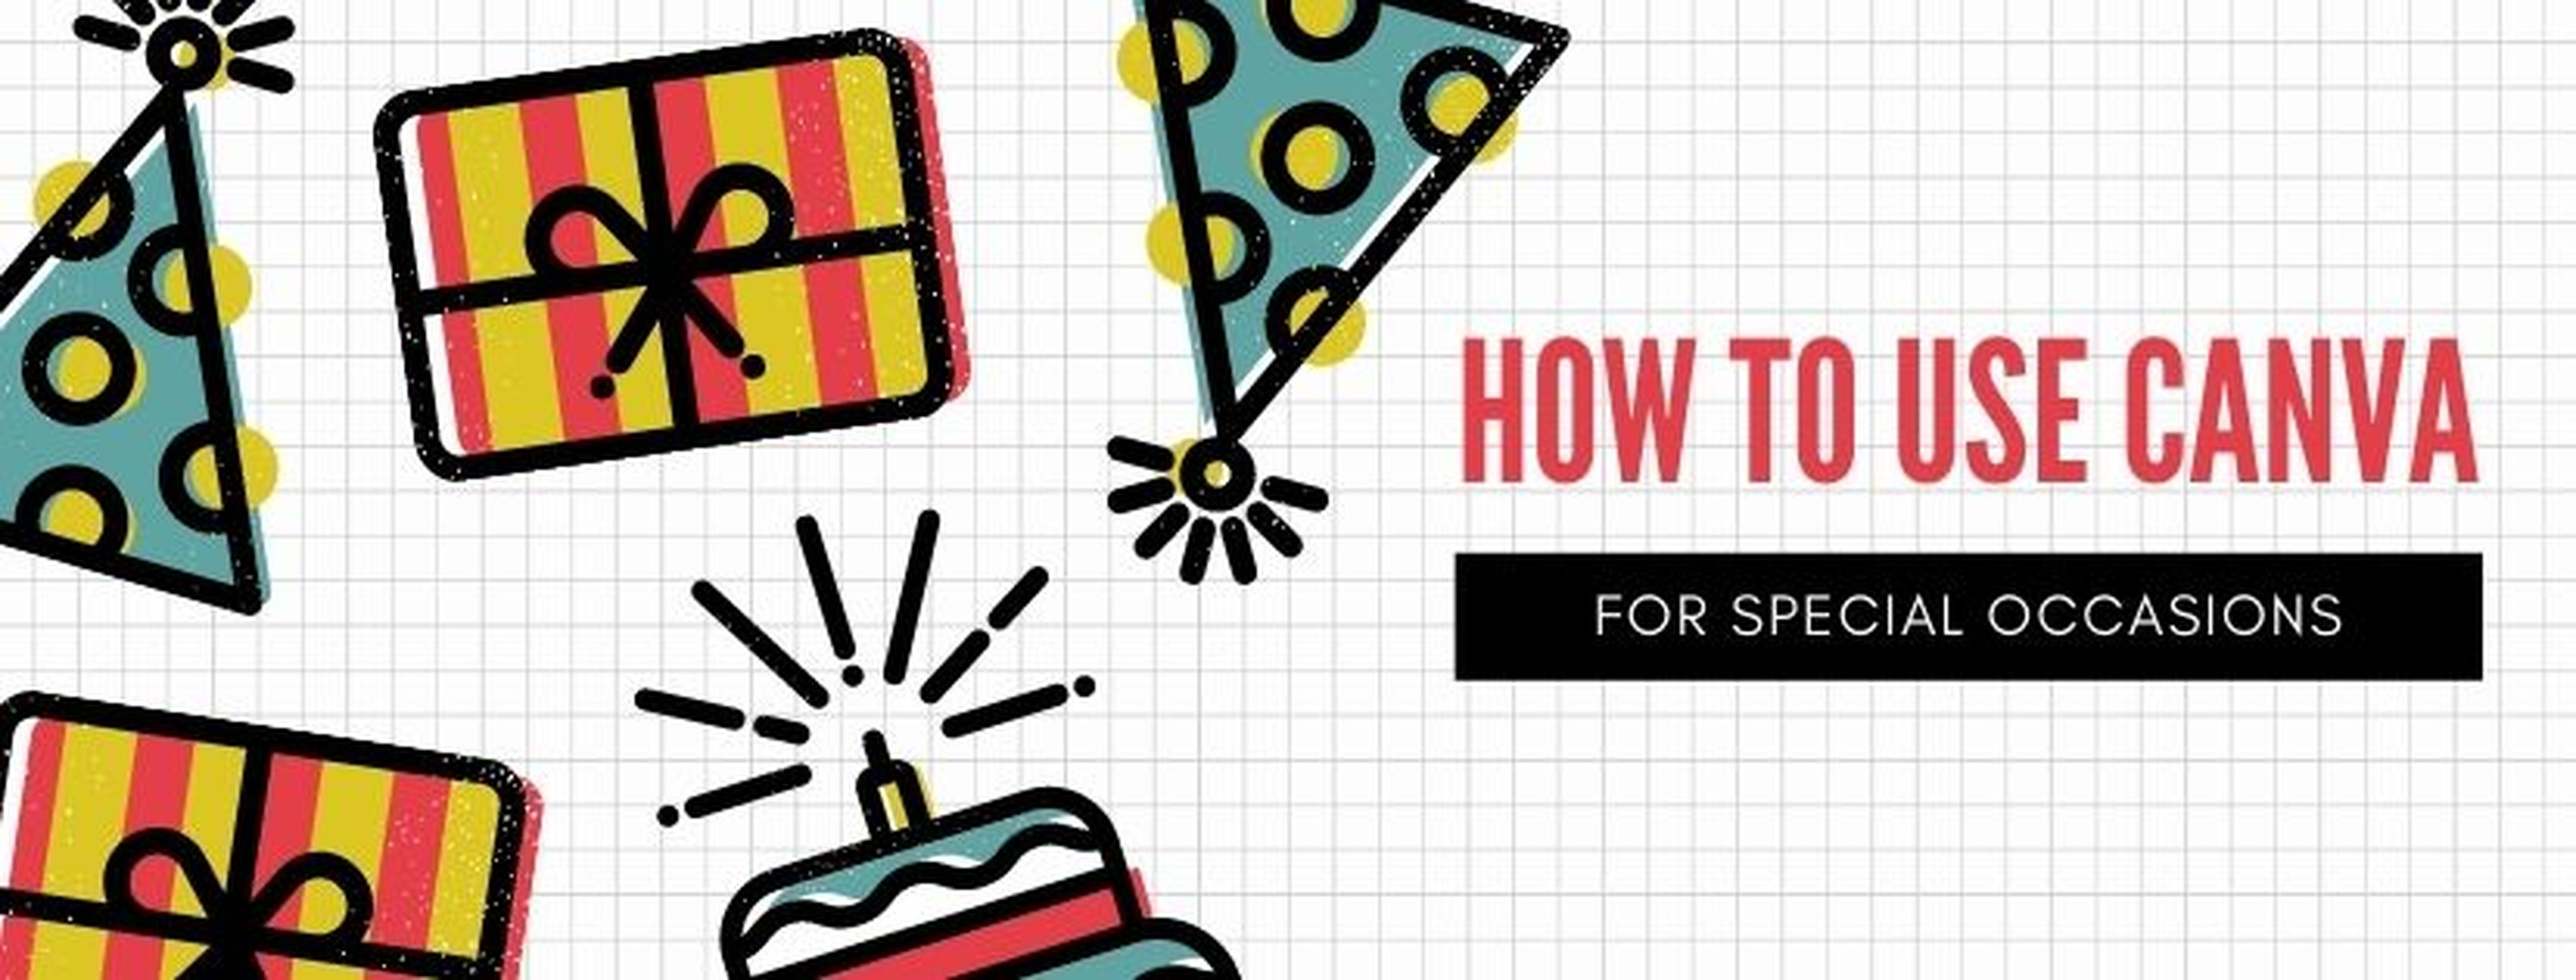 How to use Canva: A simple guide to the graphic design platform